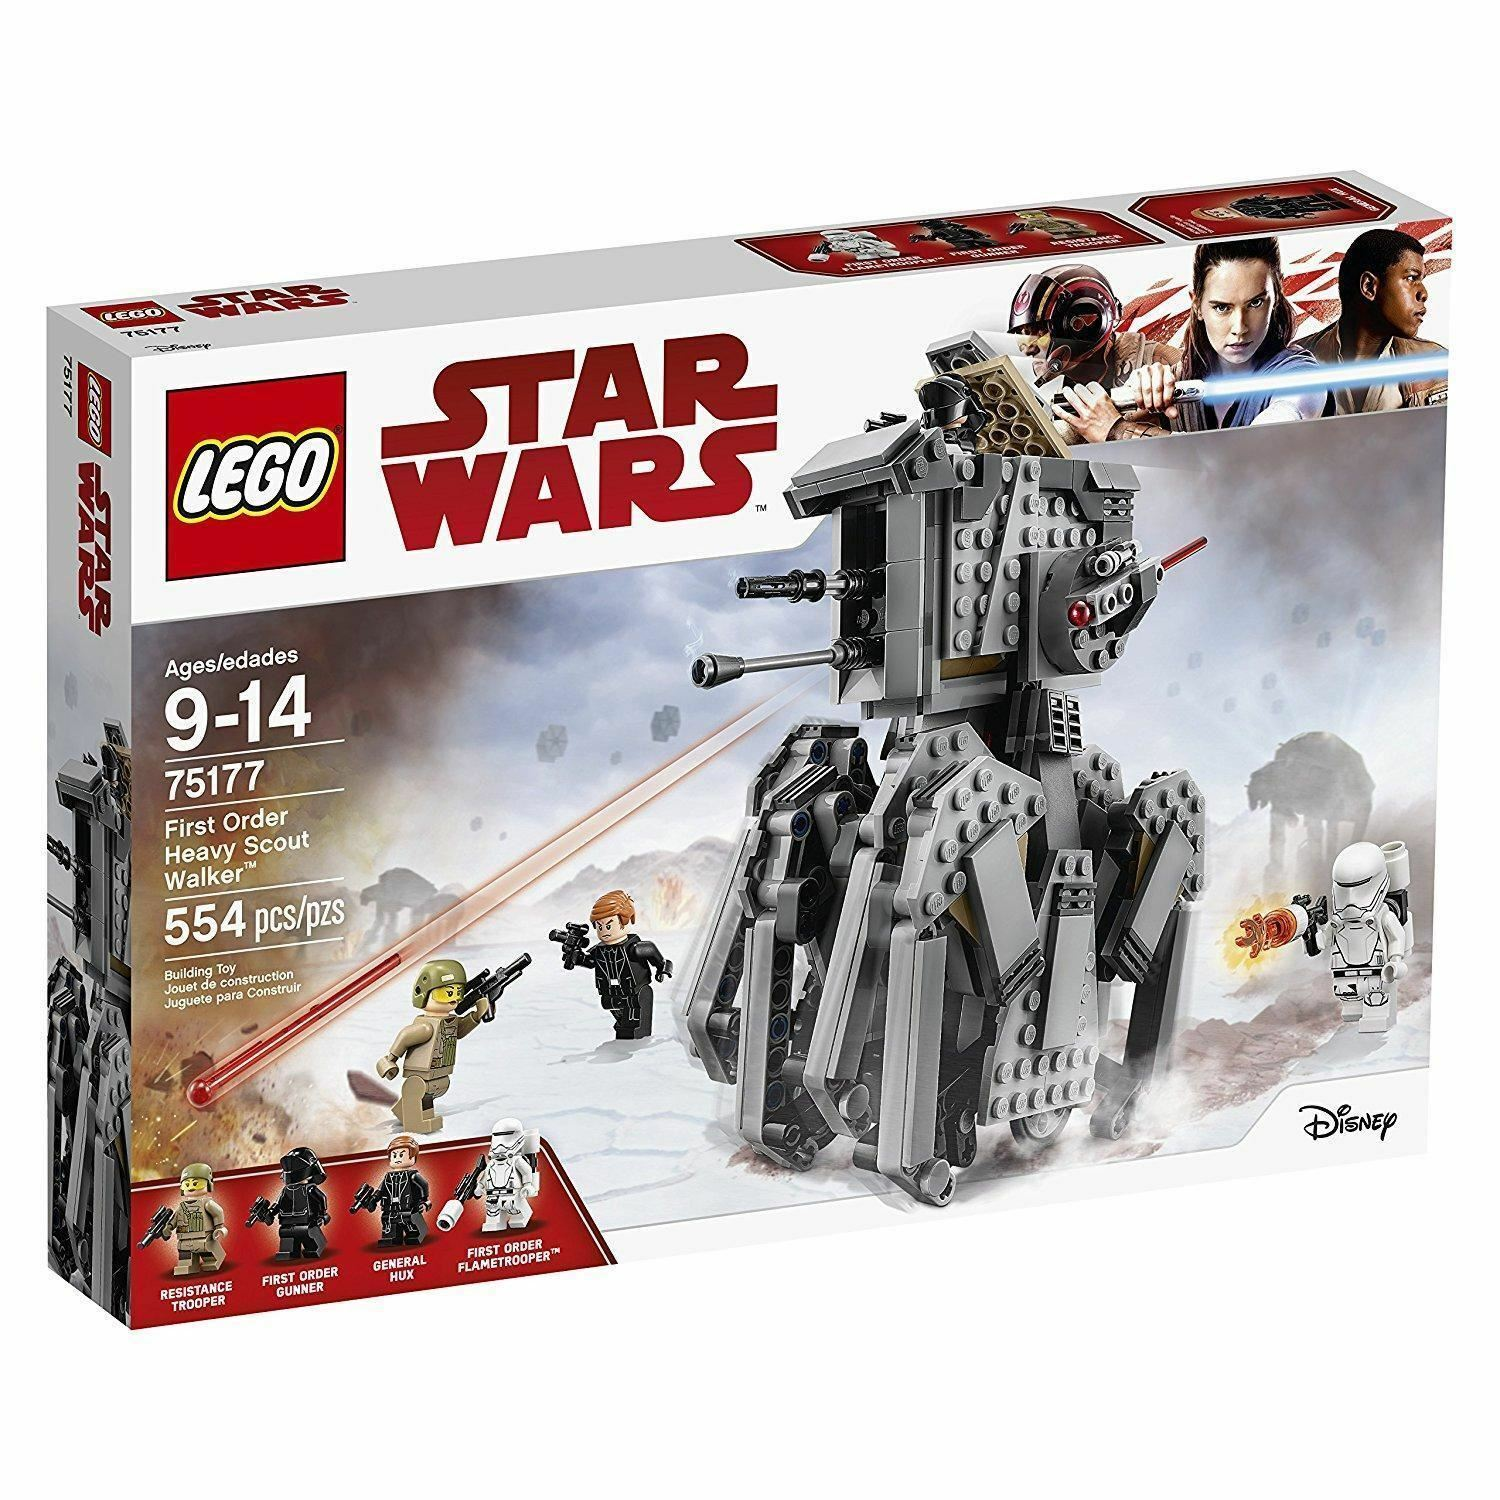 LEGO 75177 STAR WARS LAST JEDI FIRST ORDER HEAVY SCOUT WALKER